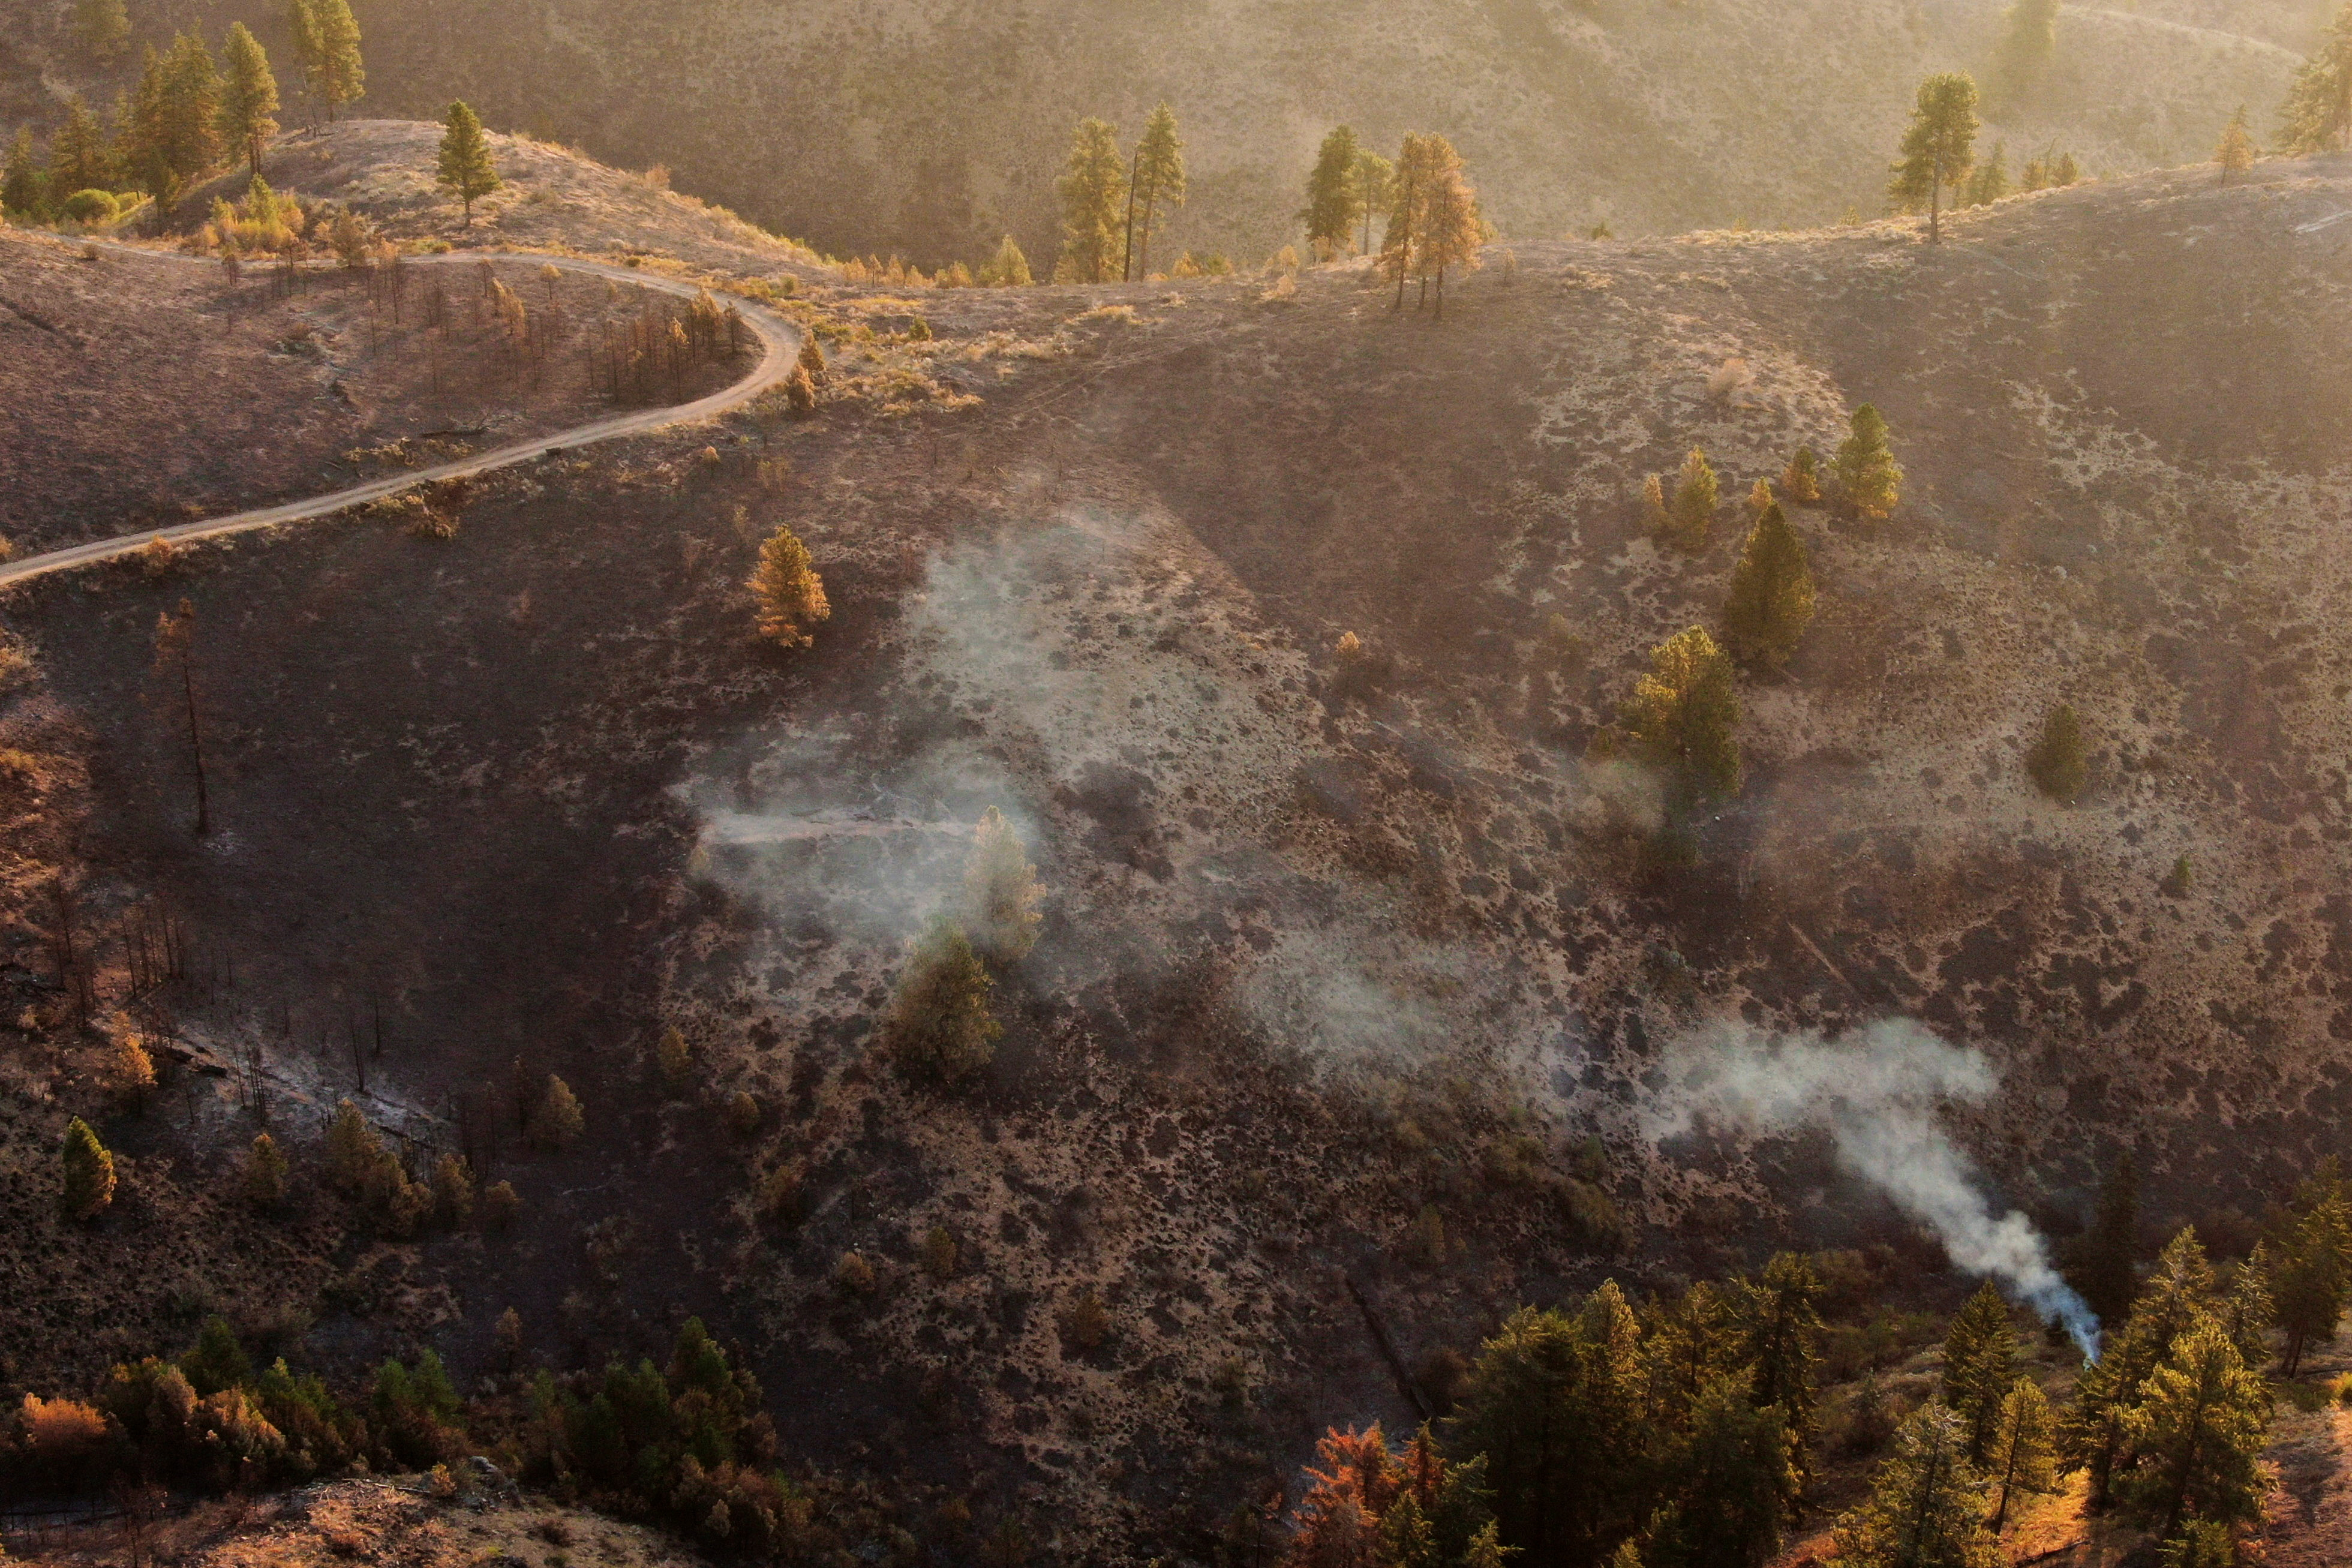 A view shows burned vegetation after the Red Apple Fire damaged the area near Wenatchee, Washington, U.S., July 24, 2021. Picture taken with a drone.  REUTERS/David Ryder